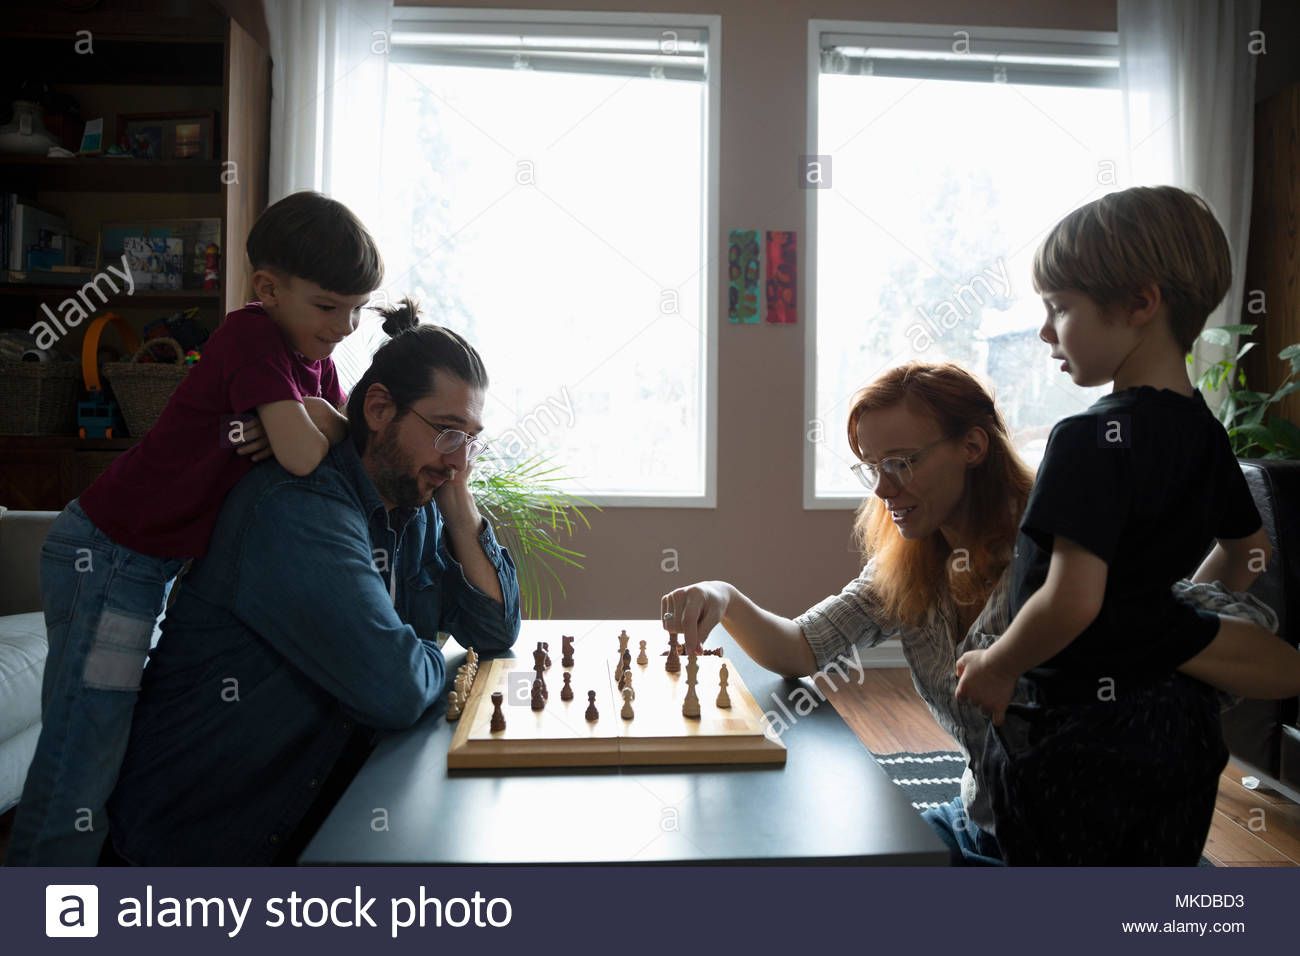 Family playing chess at living room coffee table - Stock Image